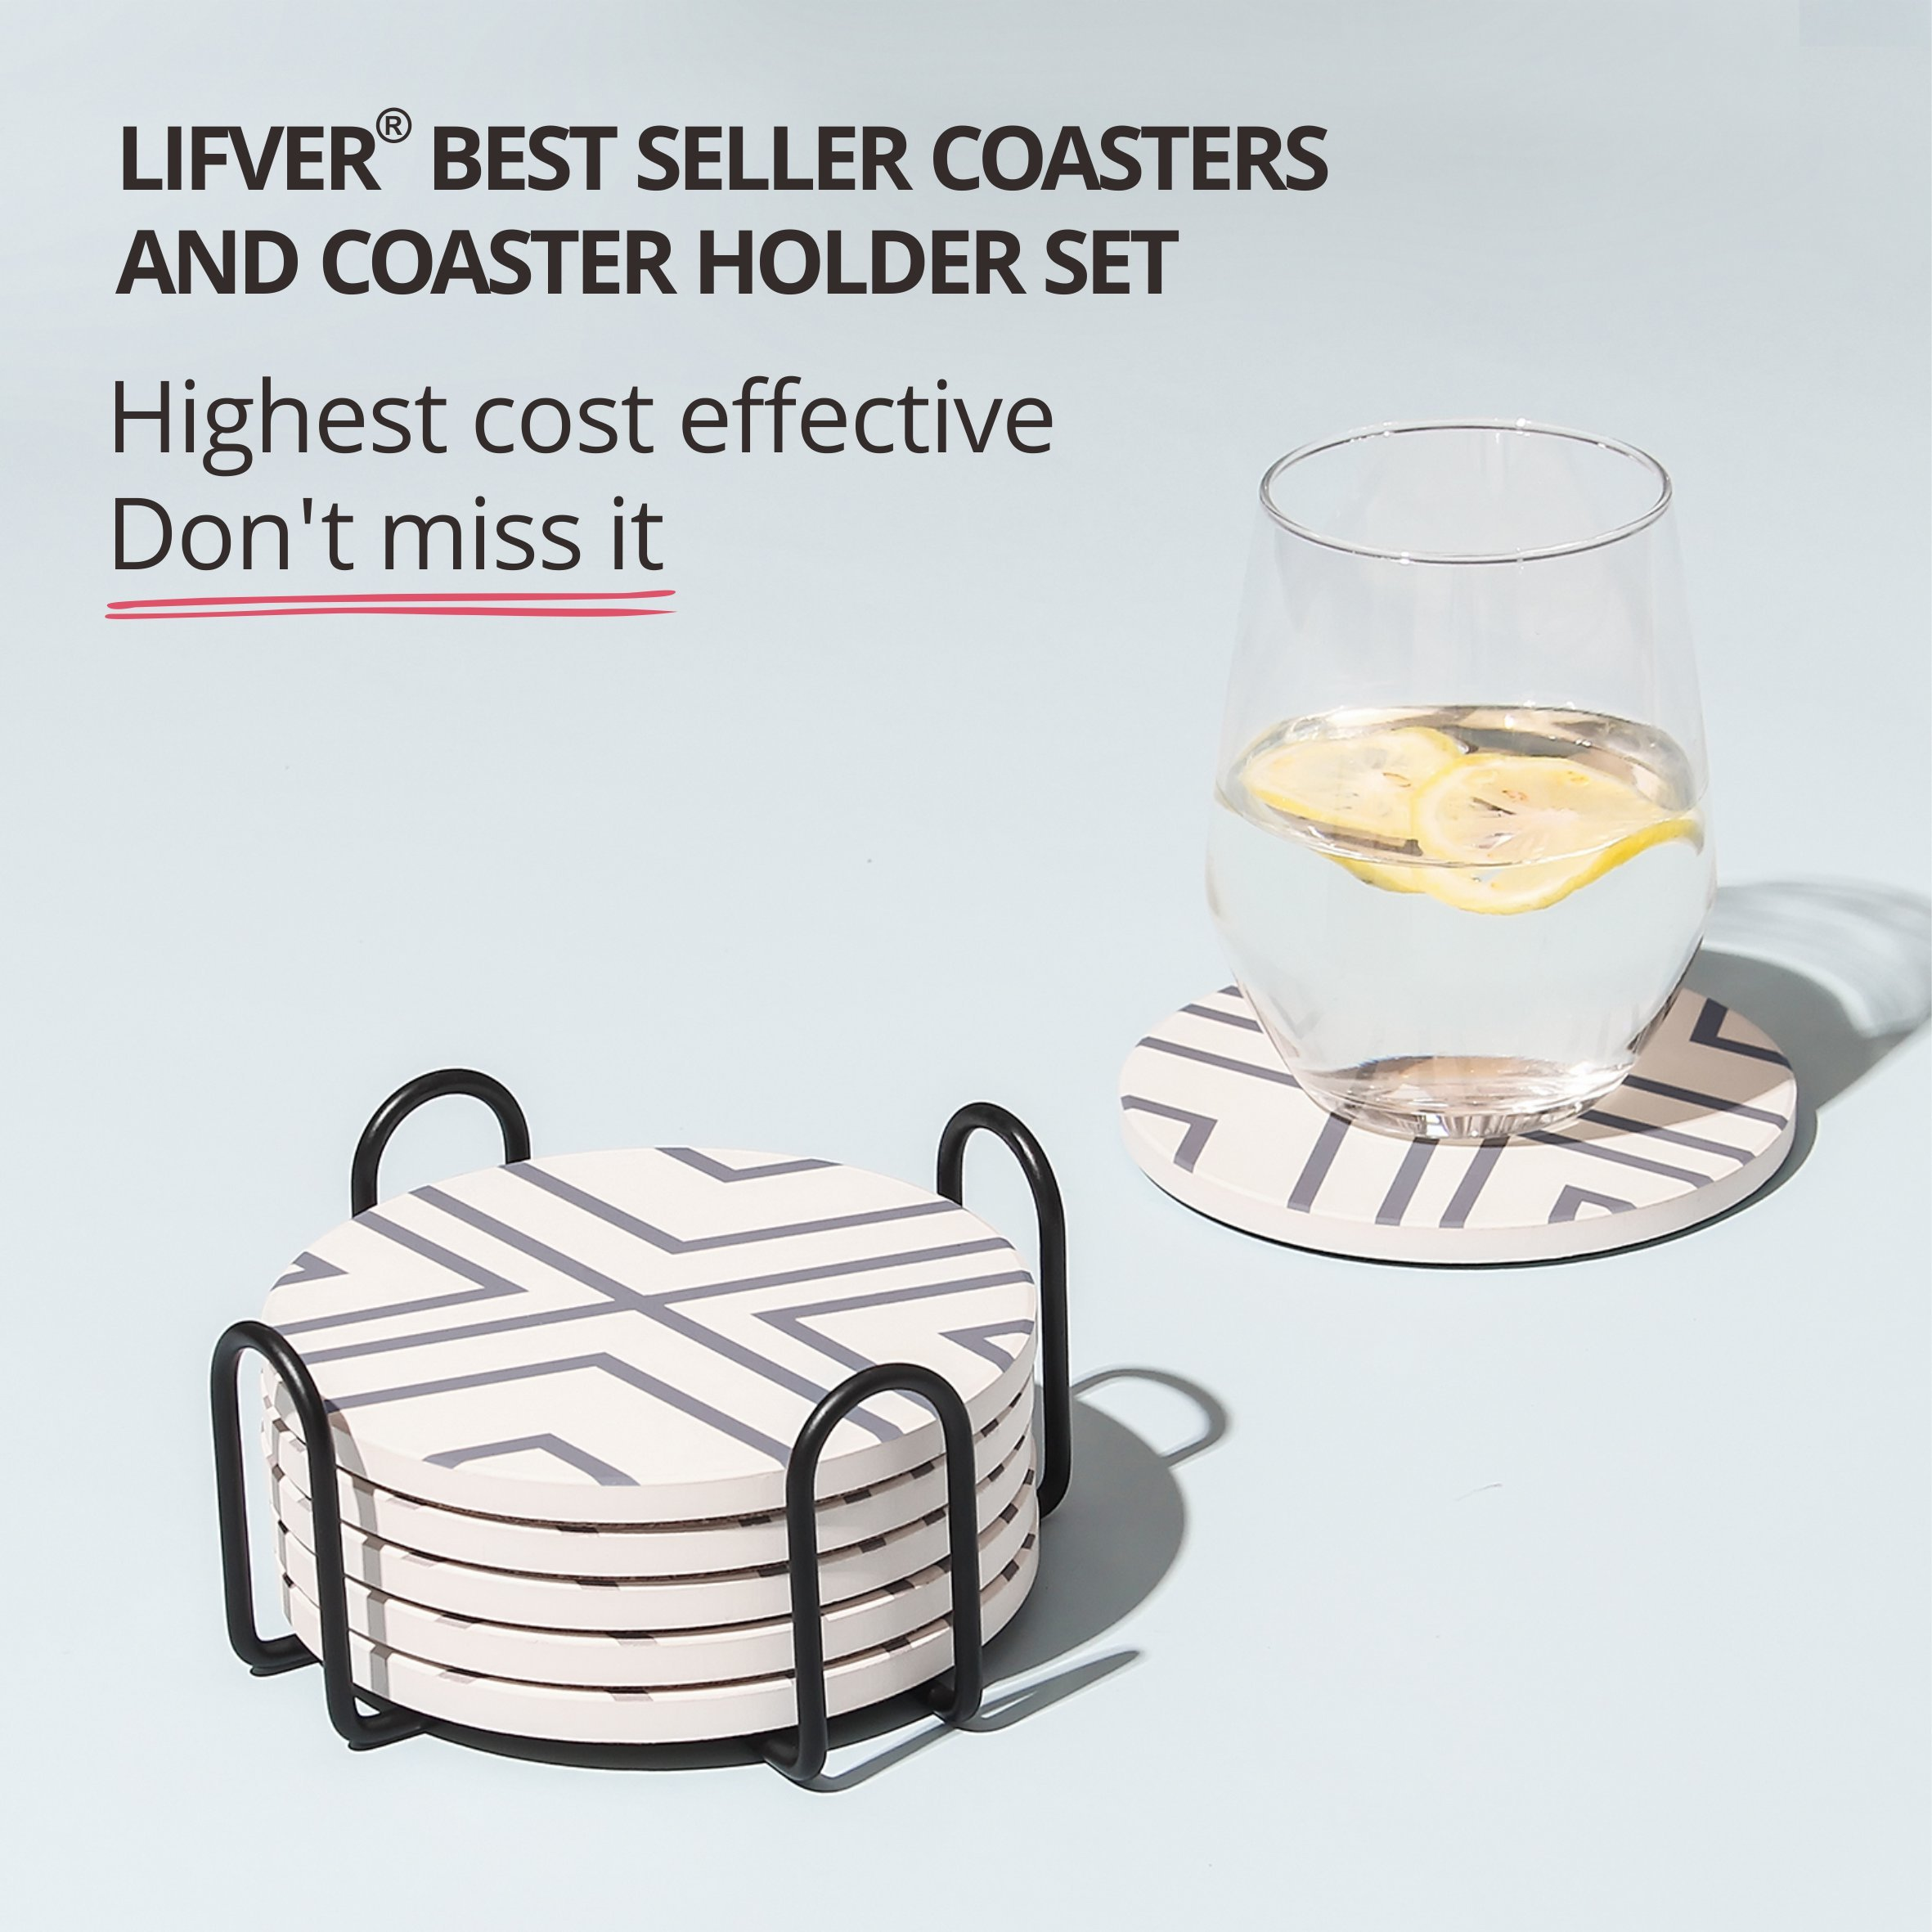 Lifver 6 Piece Absorbent Stone Coaster Set With Holder,Drink Spills Coasters, Grey-Lines by DAPRIL (Image #4)